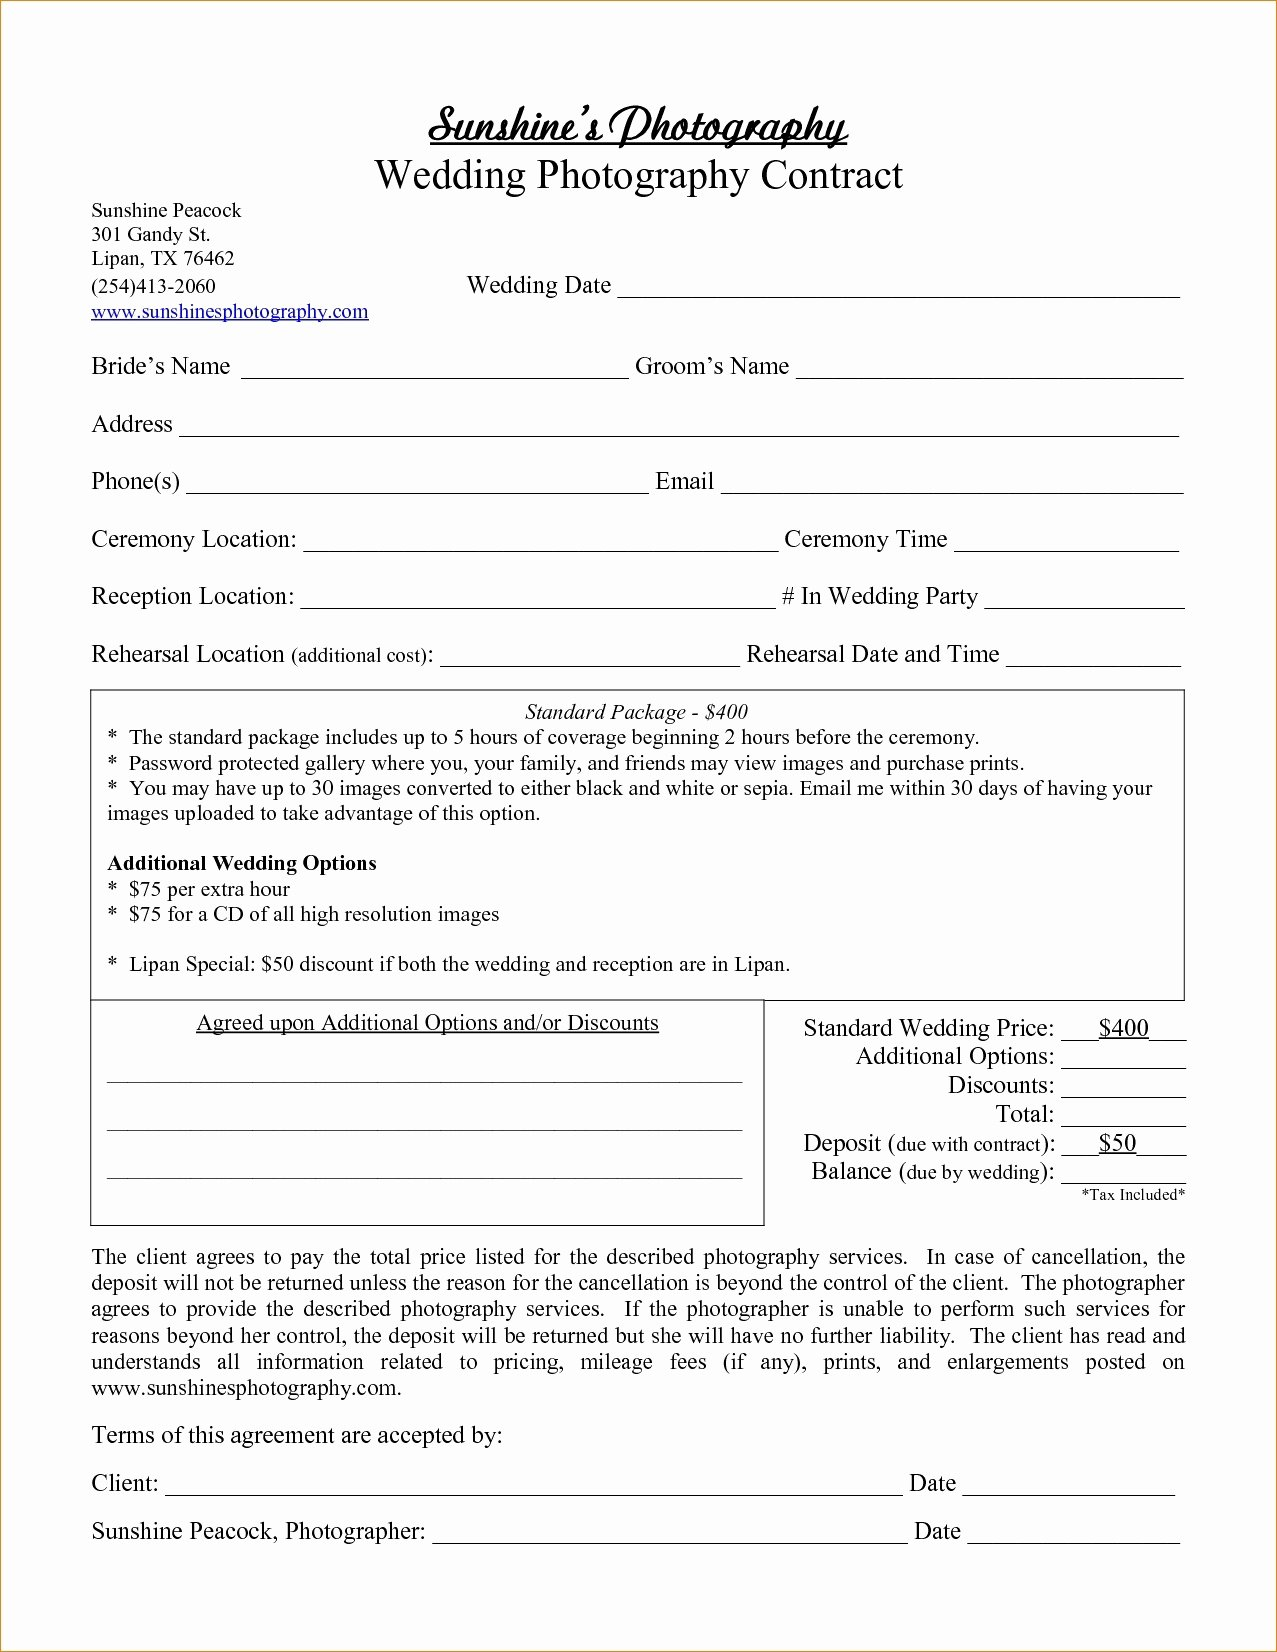 Wedding Photography Contract Template Word Awesome Graphy Contract Template Word